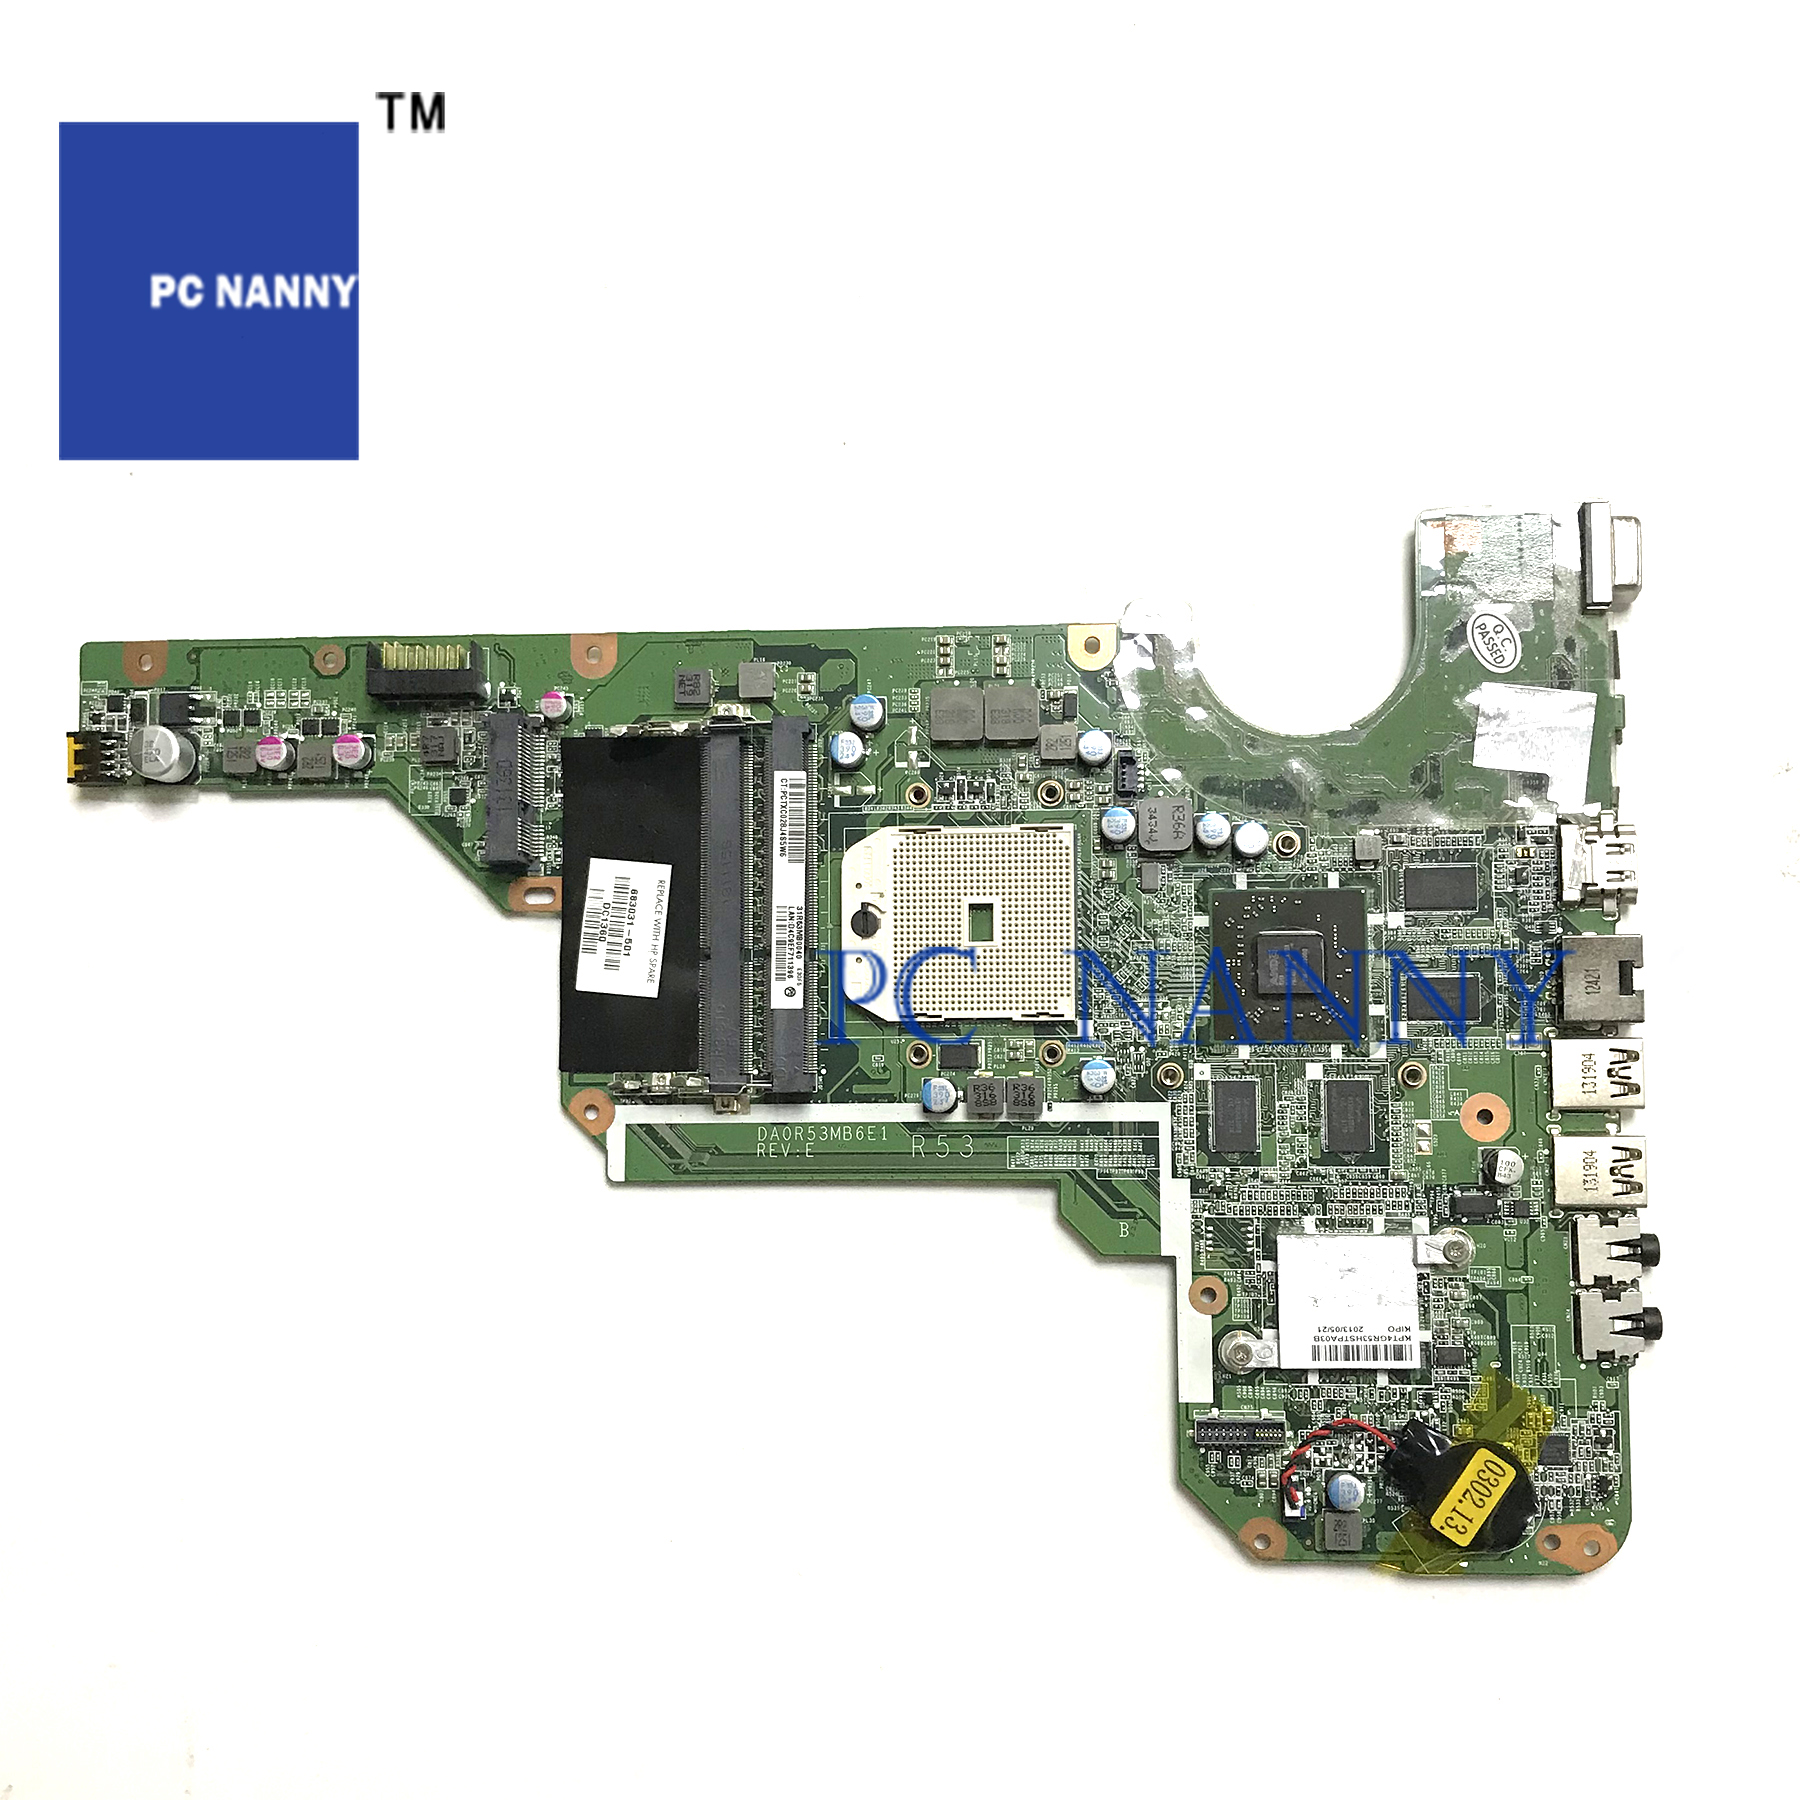 PANANNY FOR Hp G4 G6 G4-2000 G6-2000 G7 G7-2000 Laptop Motherboard 683031-501 DA0R53MB6E1 tested